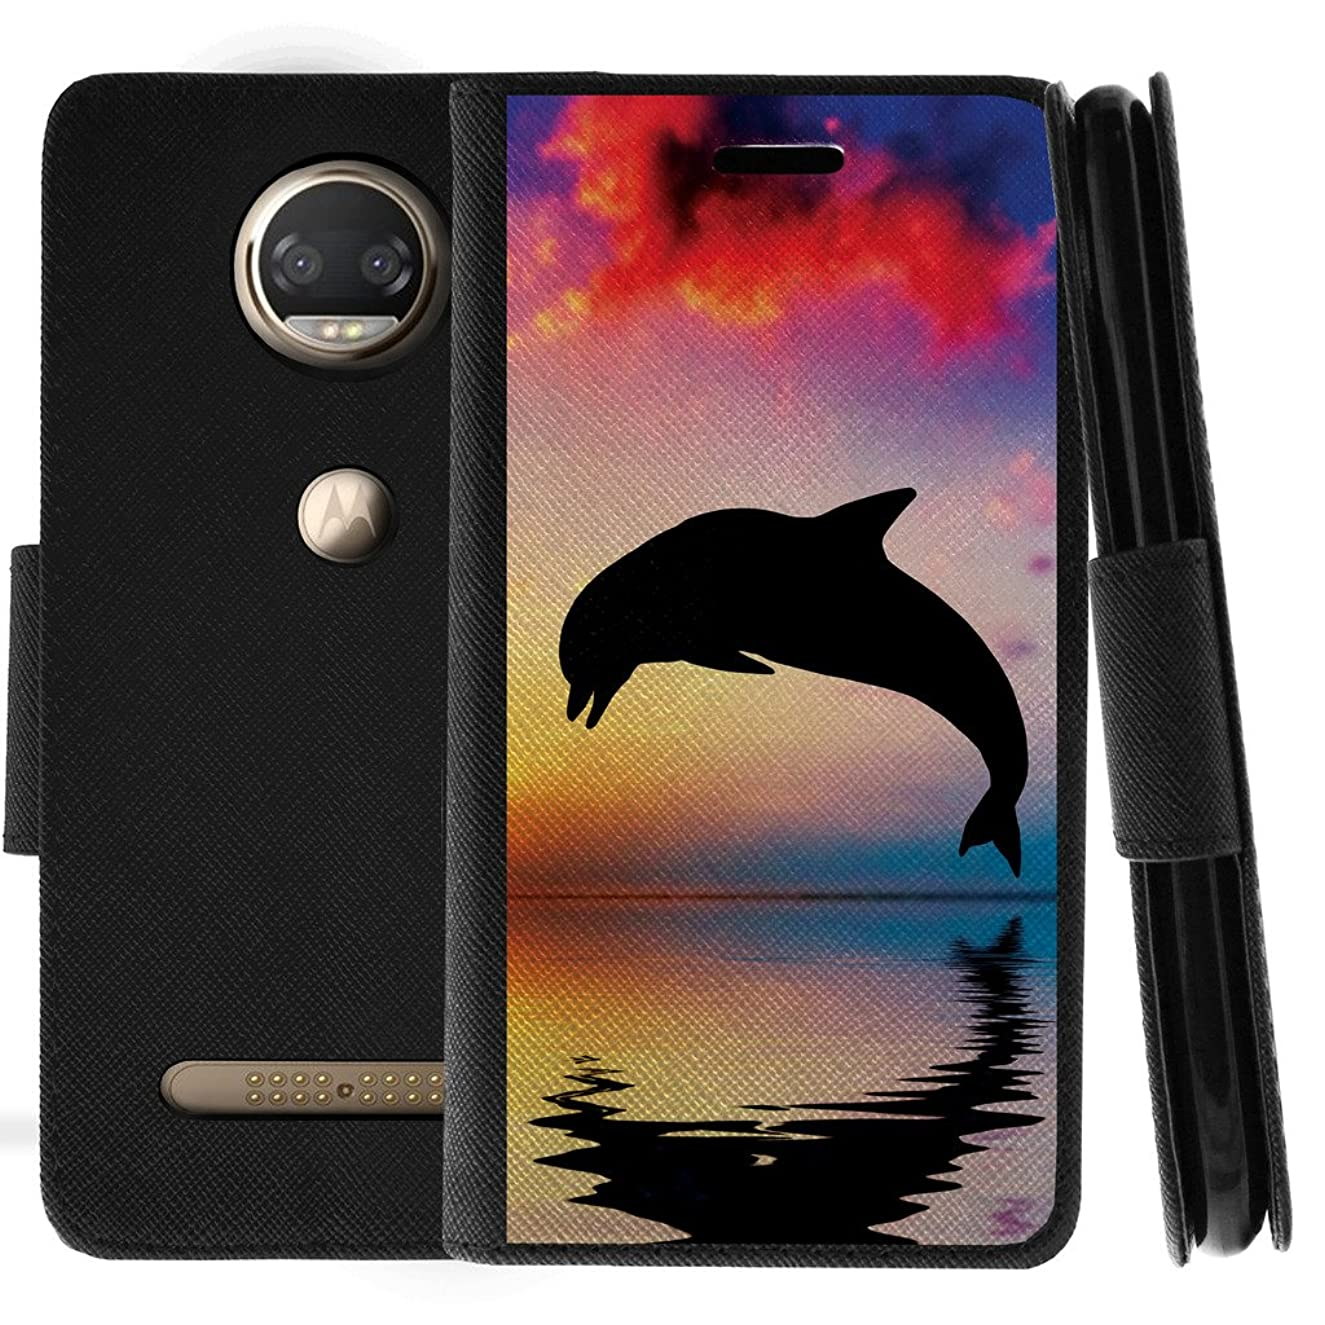 TurtleArmor | Motorola Moto Z2 Force Case | Moto Z2 Play Case | Flip Kickstand Leather Wallet Case Cover with Card Slots Sea Ocean Design - Dolphin Jump